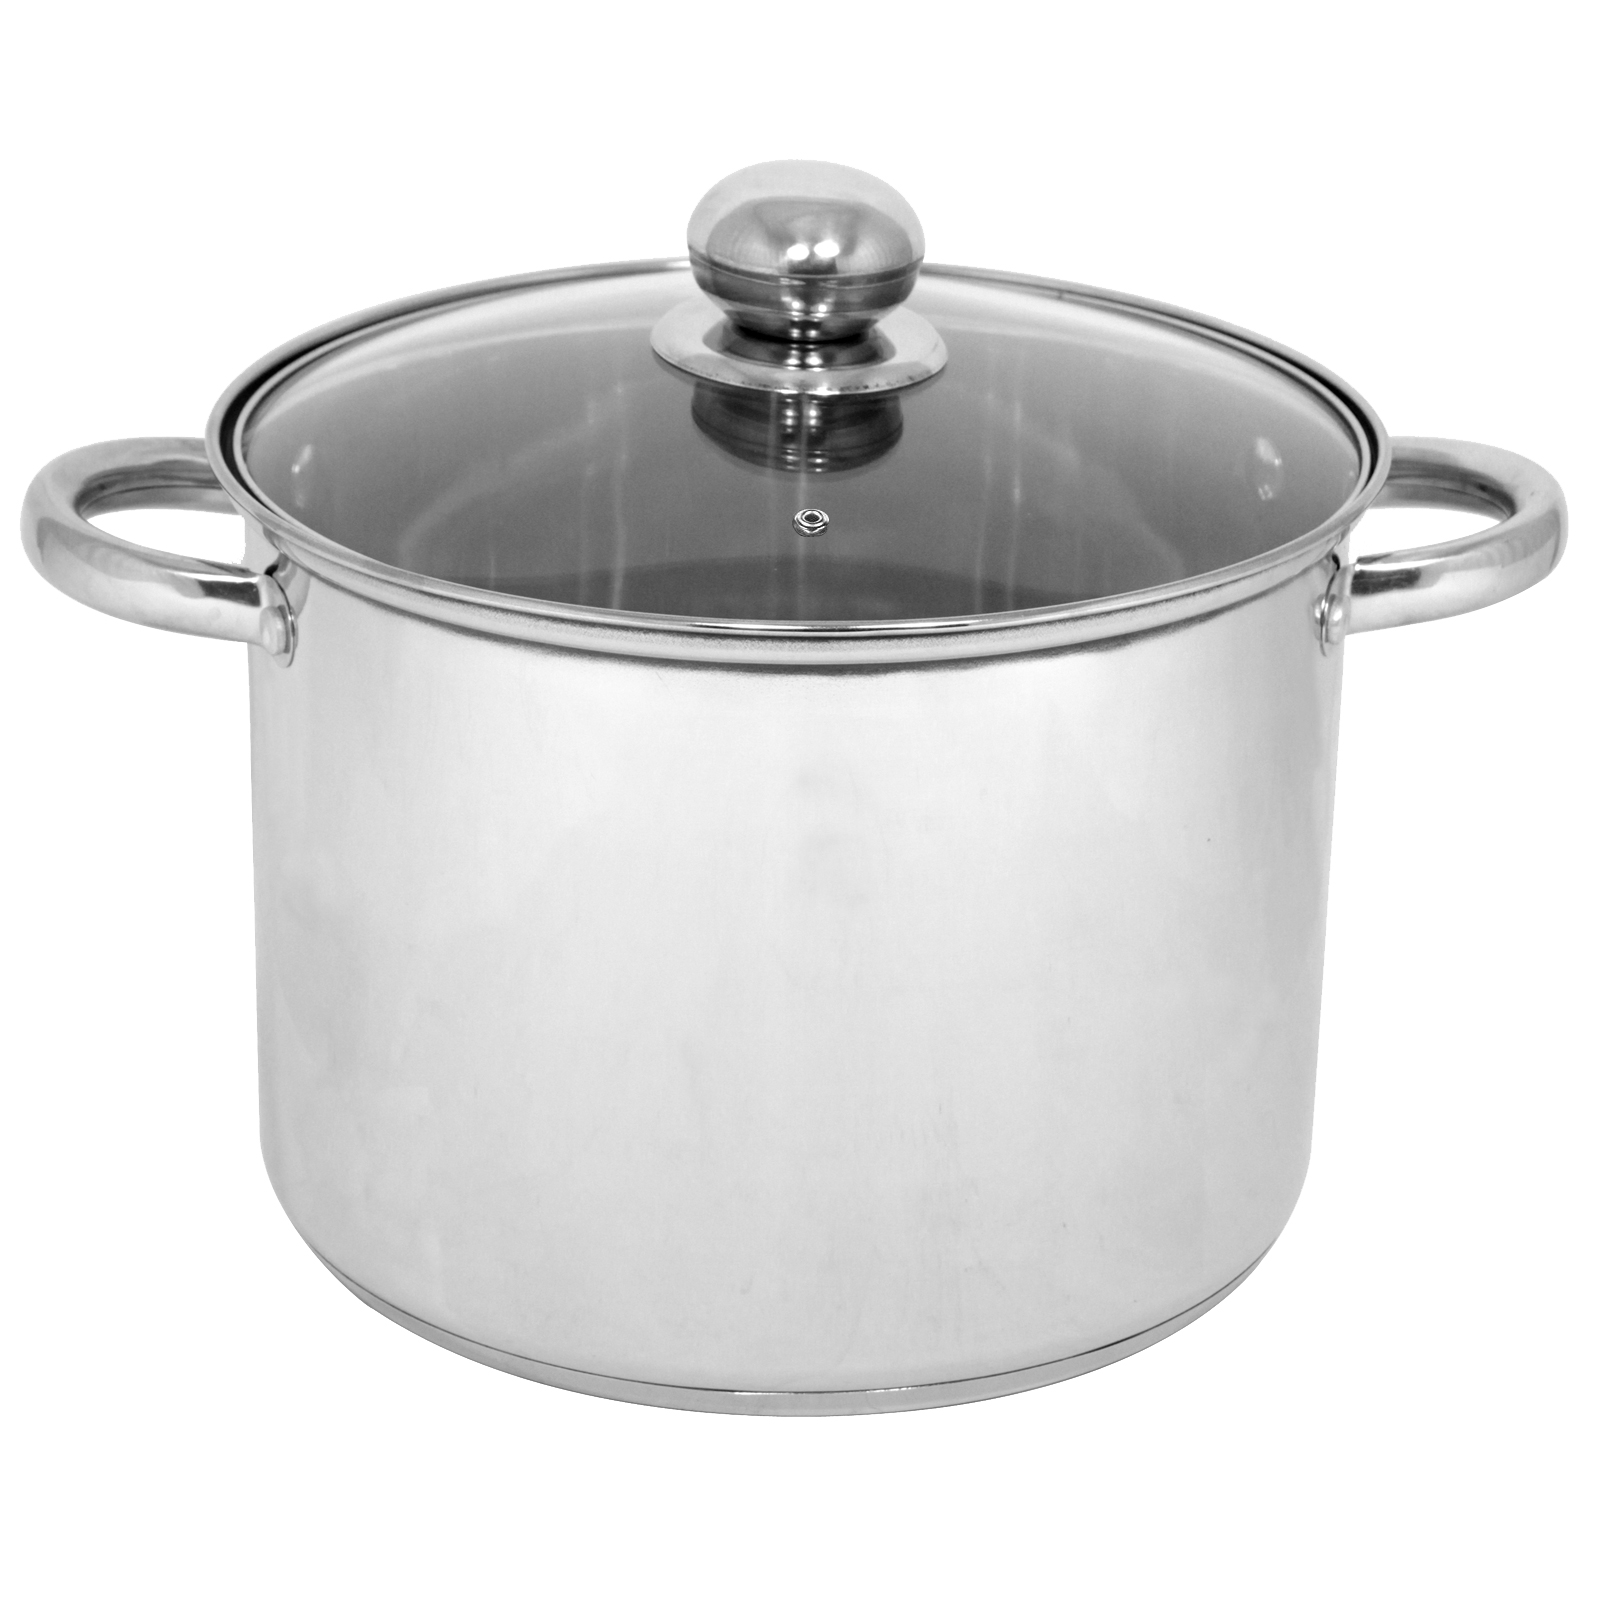 SUPREME STAINLESS STEEL DEEP STOCK POT 24CM